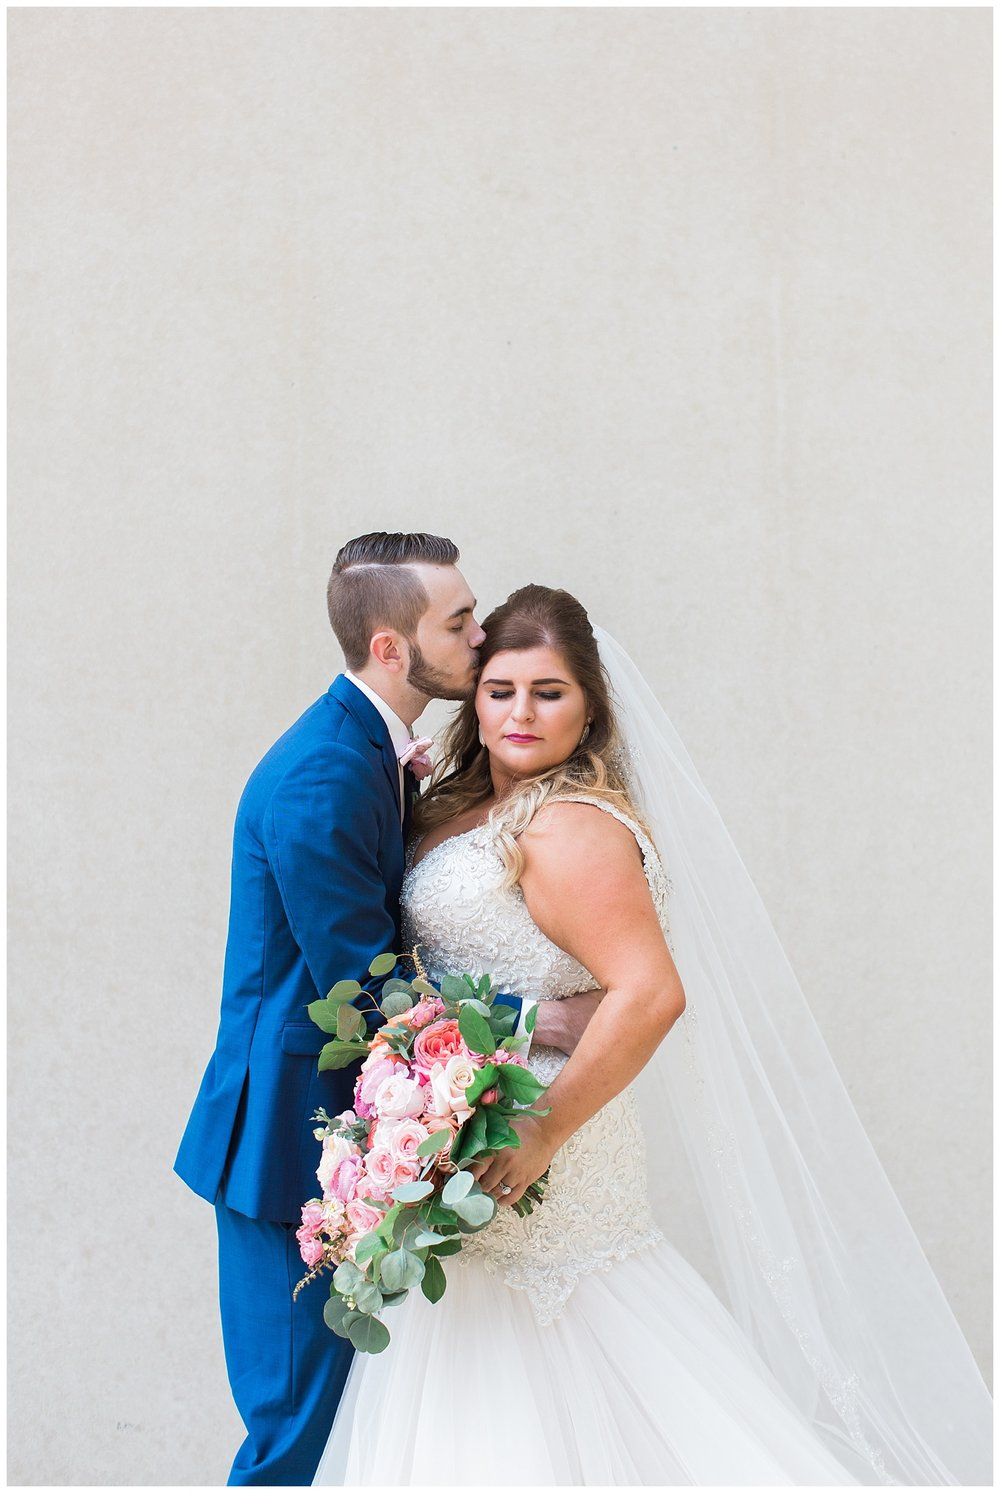 DANI & MICHAEL MARRIED | HAWTHORNE HOUSE WEDDING | MARISSA CRIBBS PHOTOGRAPHY_2614.jpg